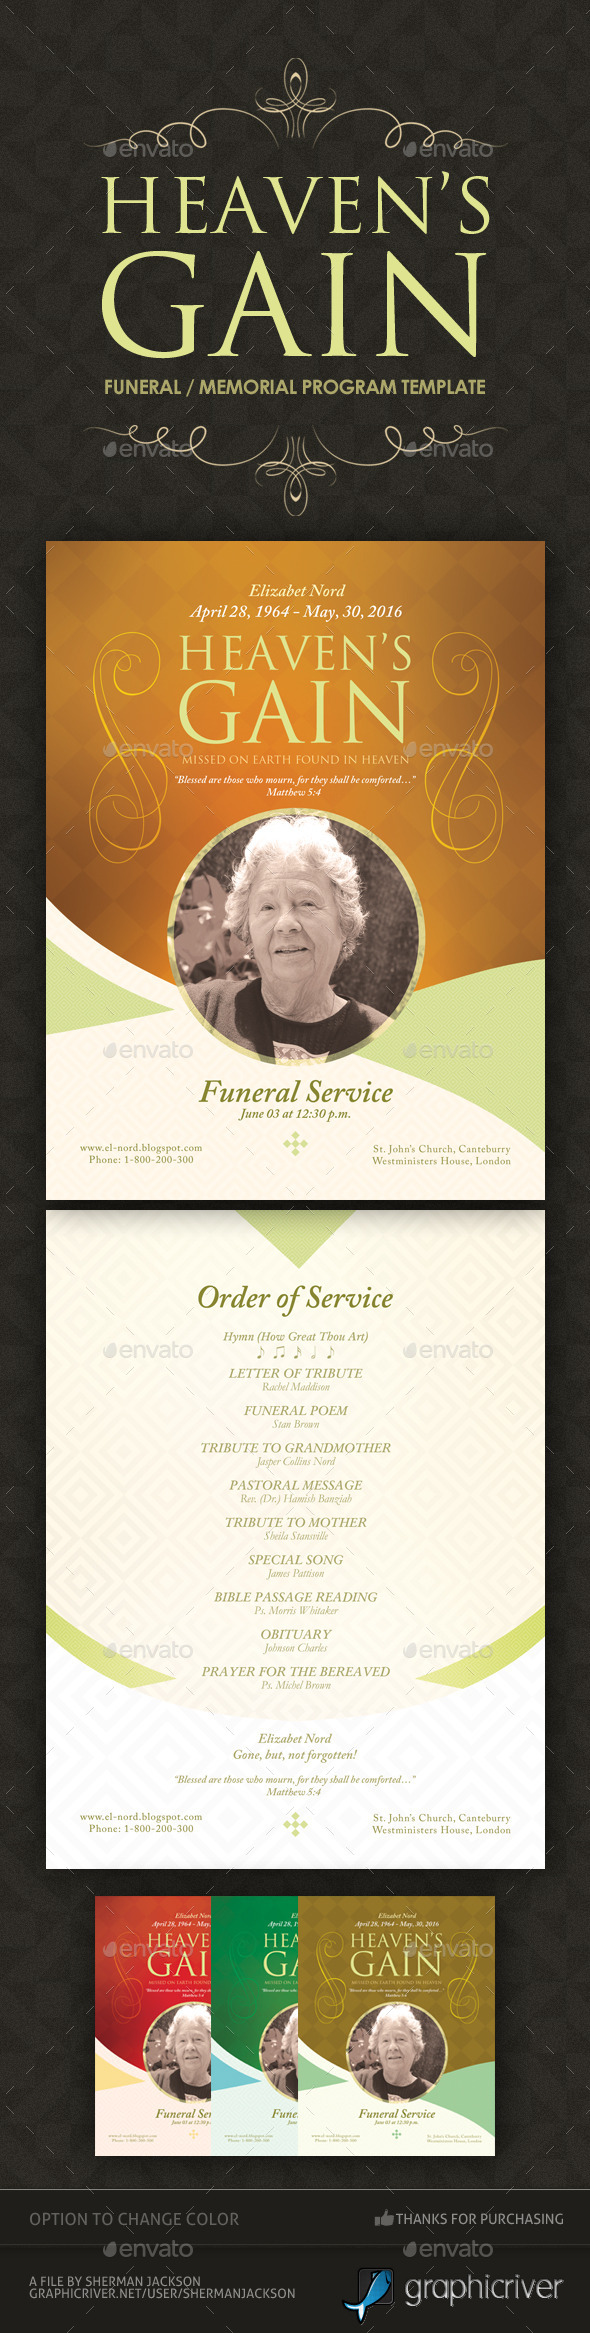 GraphicRiver Heaven s Gain Funeral Memorial Program 11241050